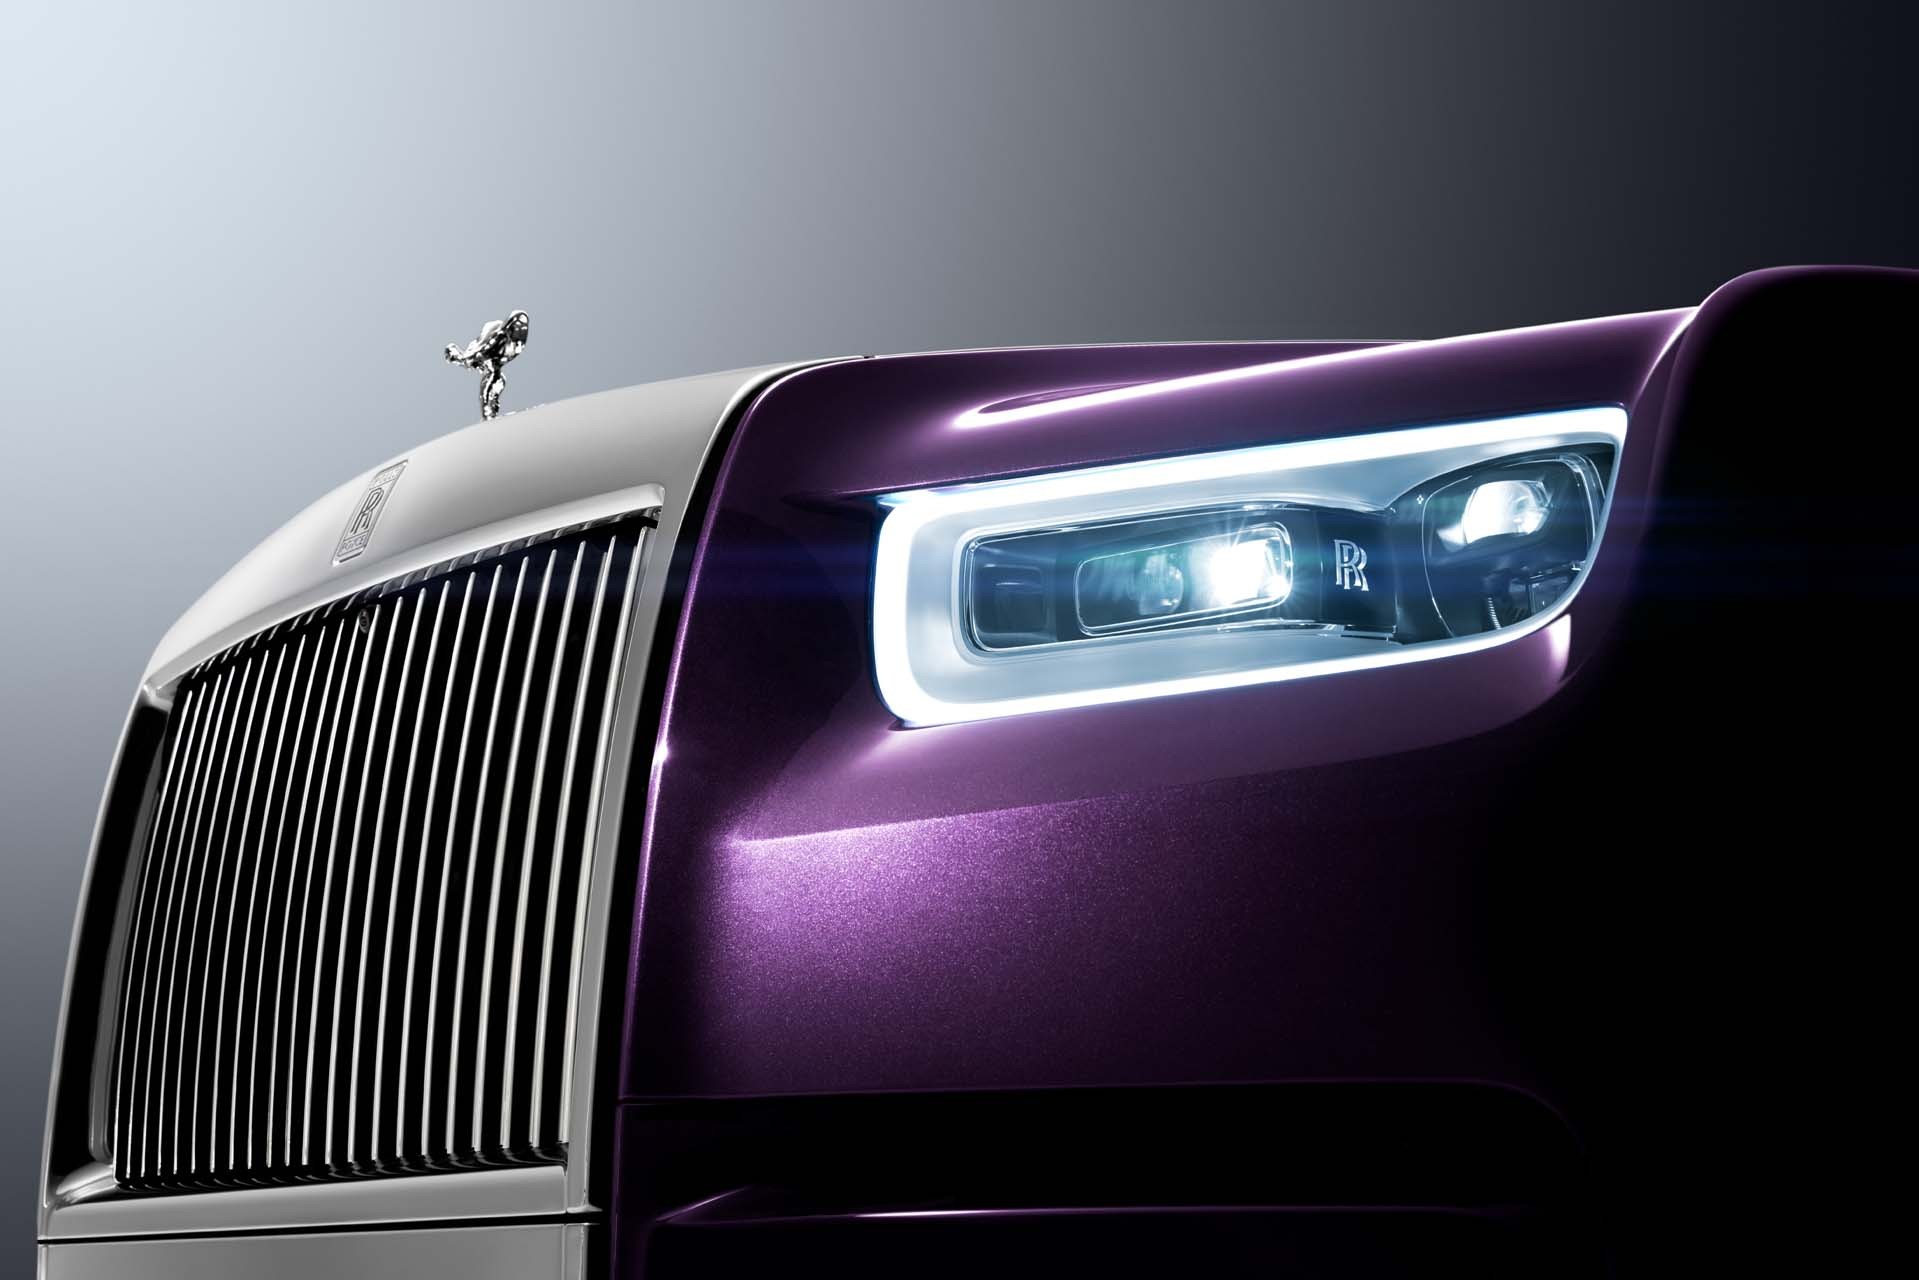 Rolls-Royce doesn't do half steps; EVs in the future, no hybrids